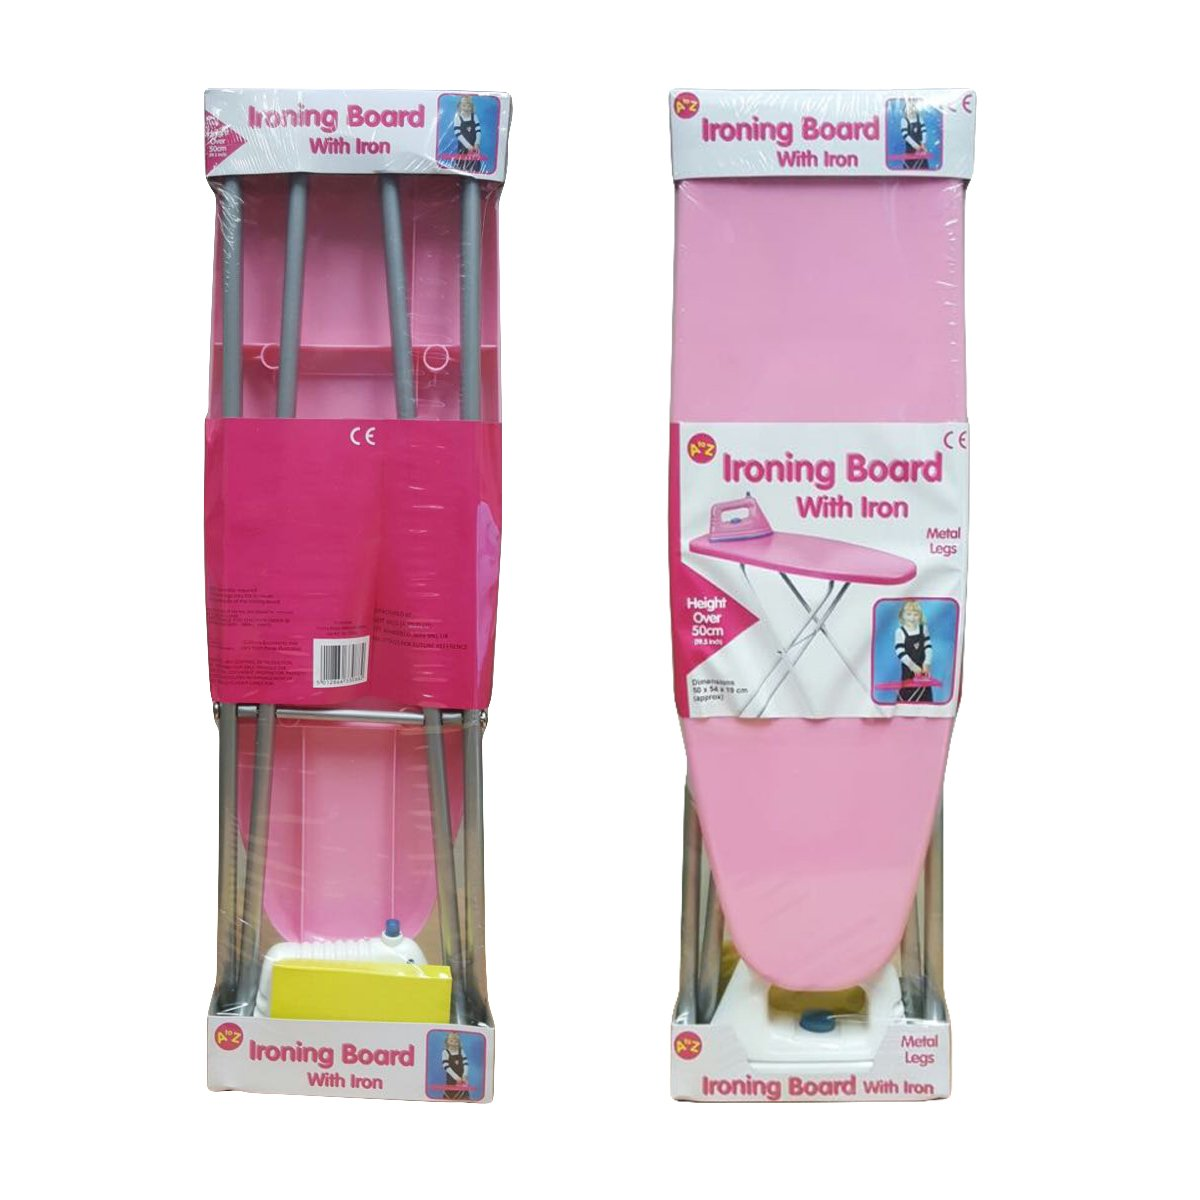 Children Pretend Play Folding Ironing Board Toy with Iron Pink Girls Fun Activity House Play Bedroom Xmas Birthday Gift Set FB FunkyBuys